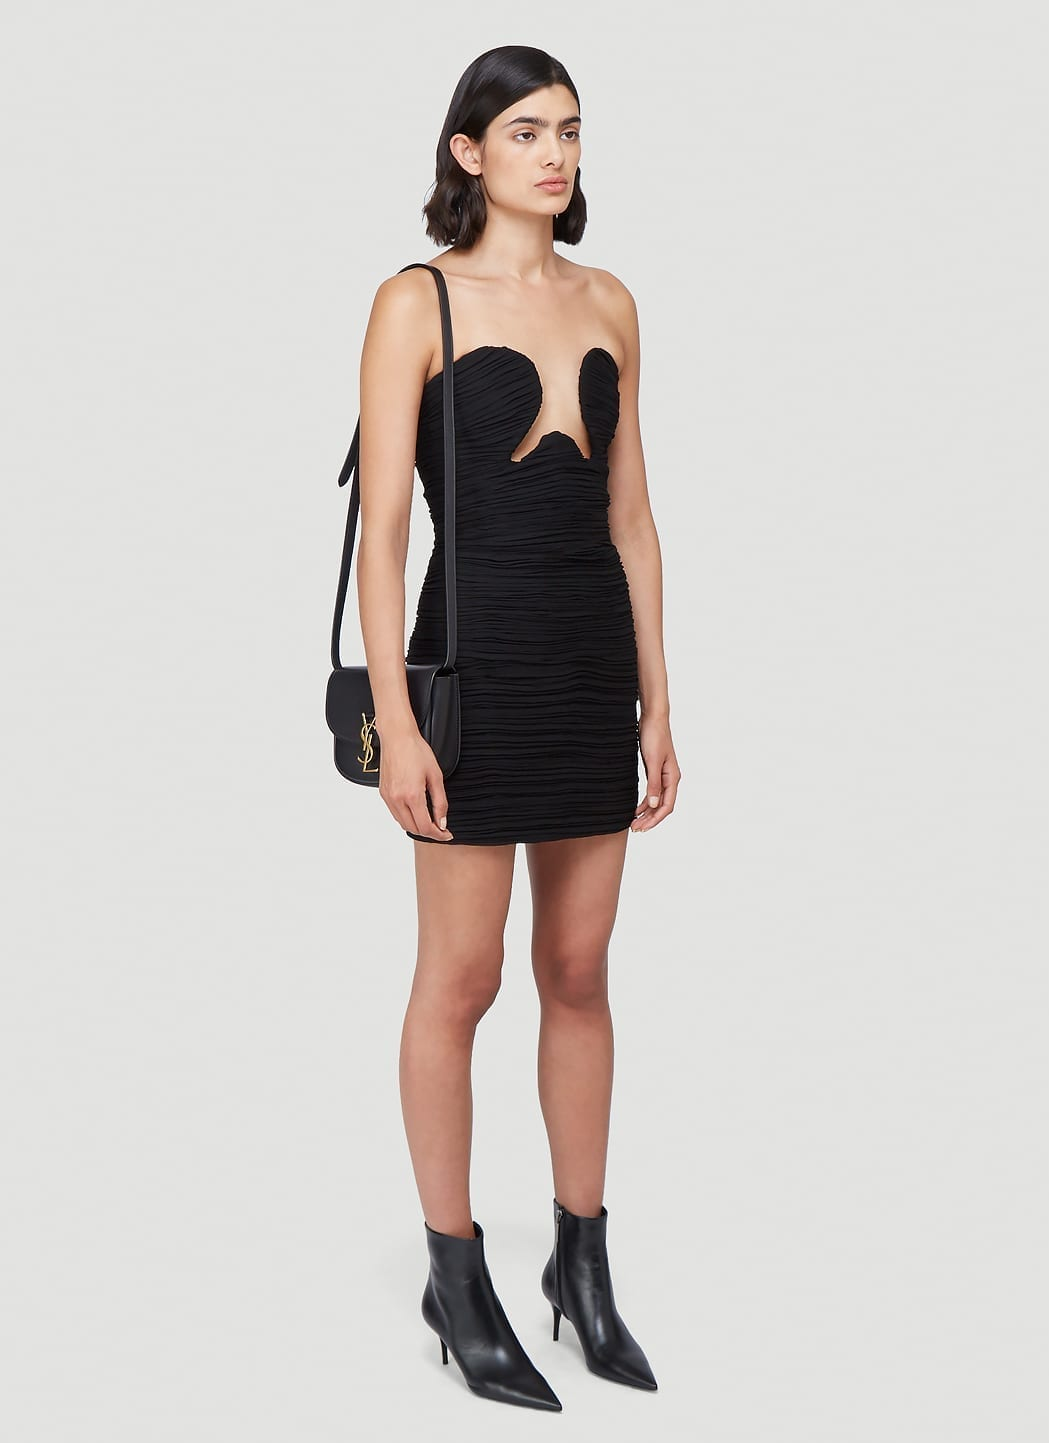 SAINT LAURENT Cut-Out Ruched Dress